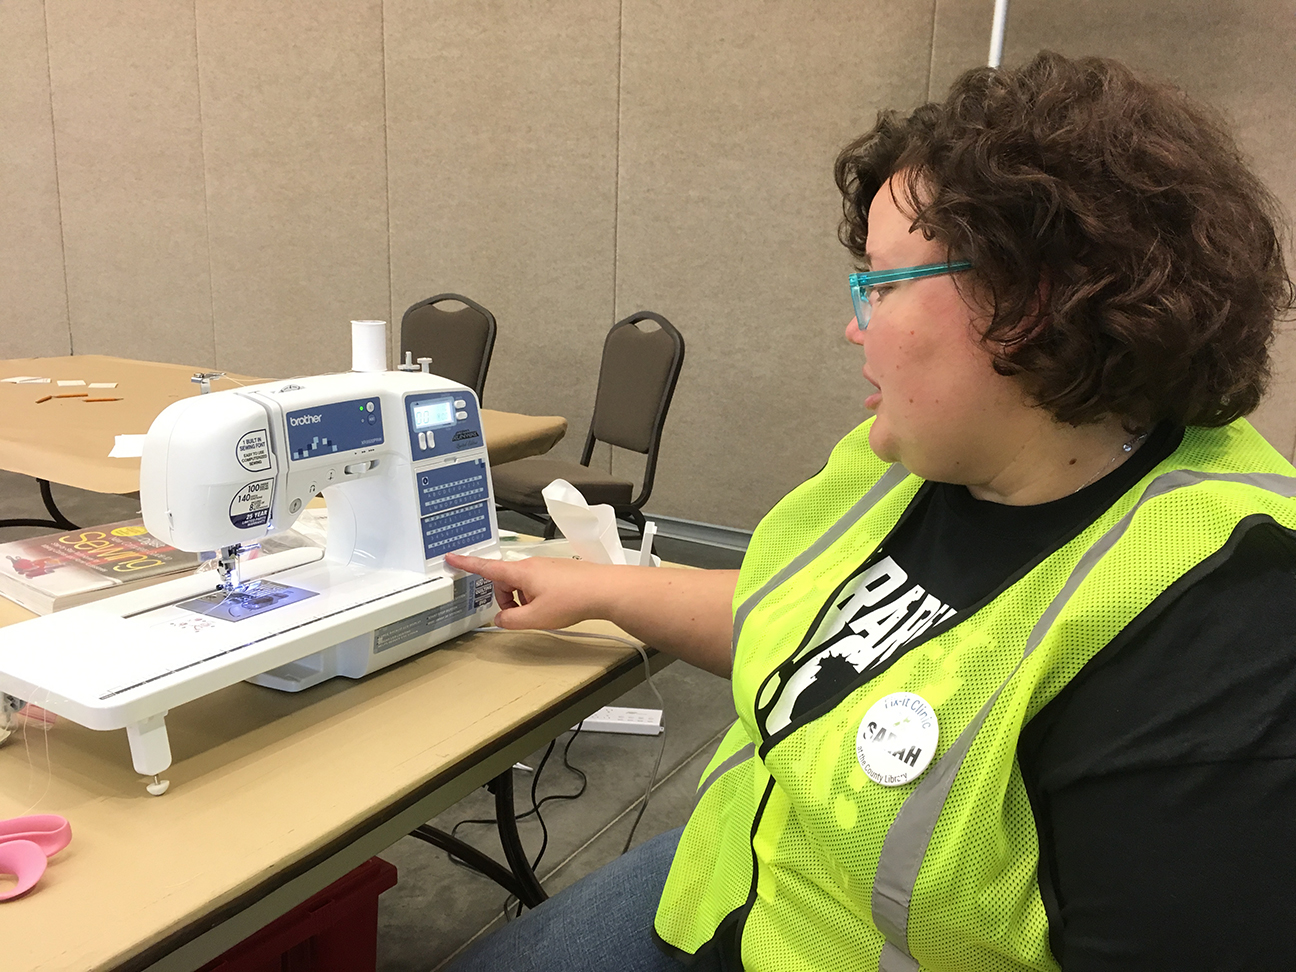 Volunteer with the Utah Recycling Alliance